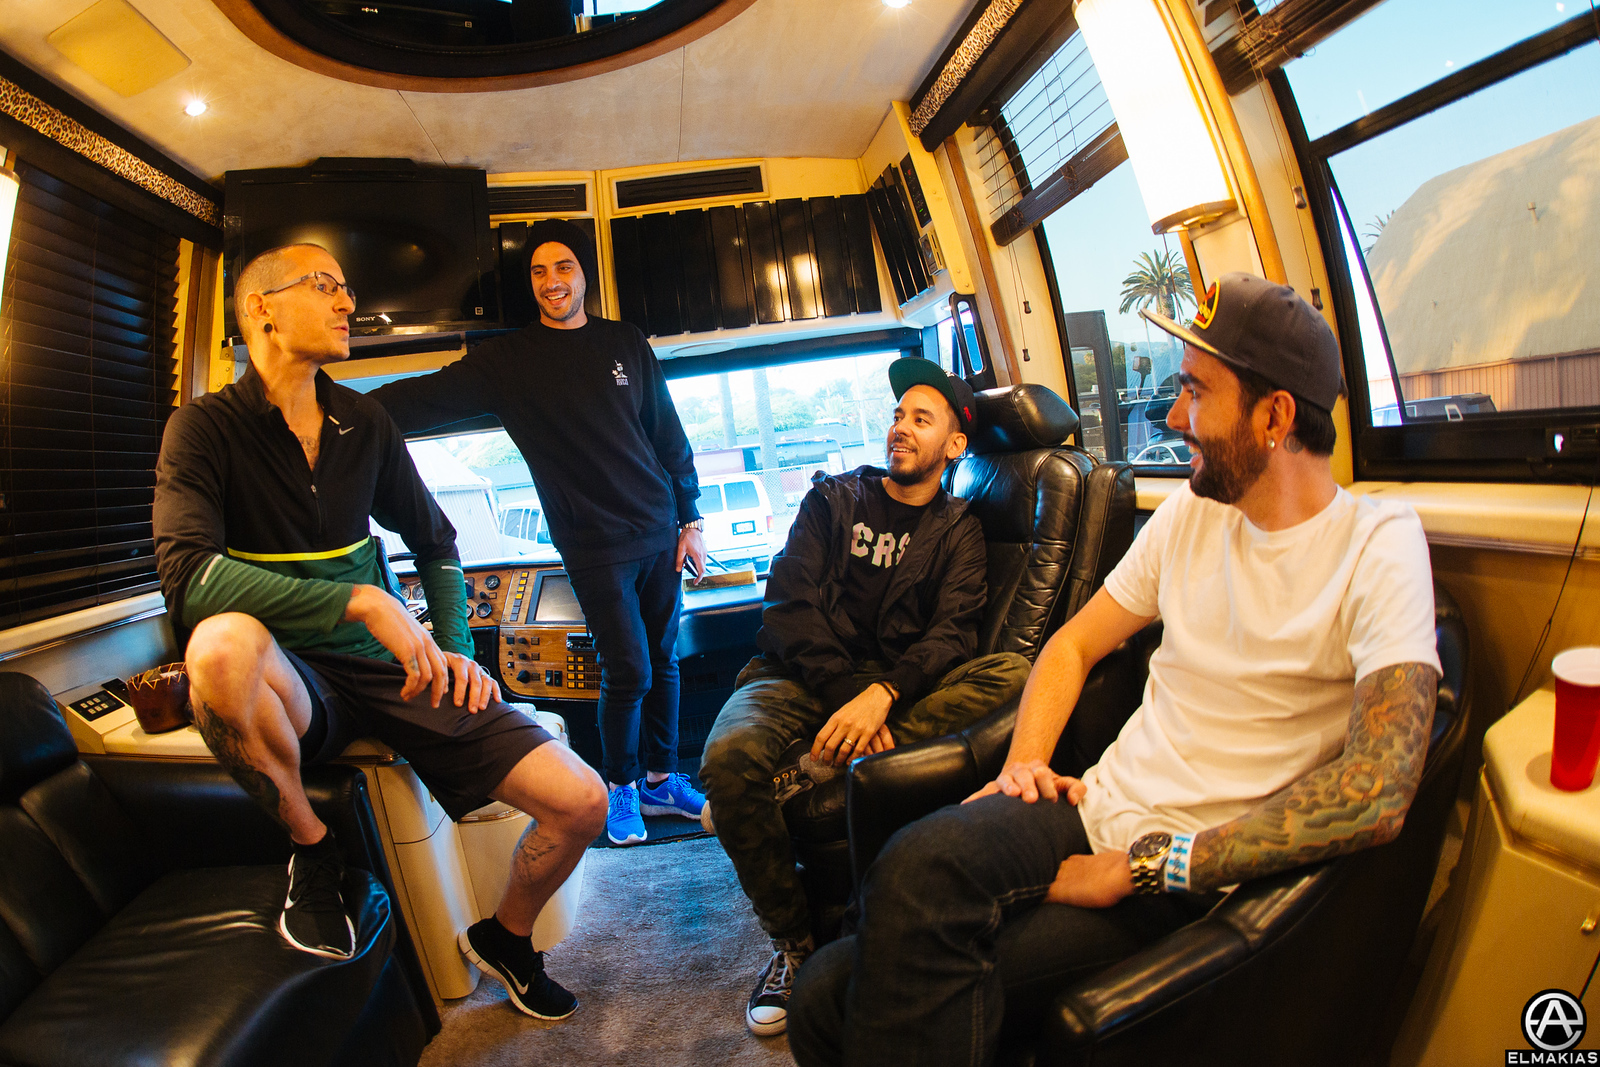 Chester, Mike and Jeremy talking on the bus later that night